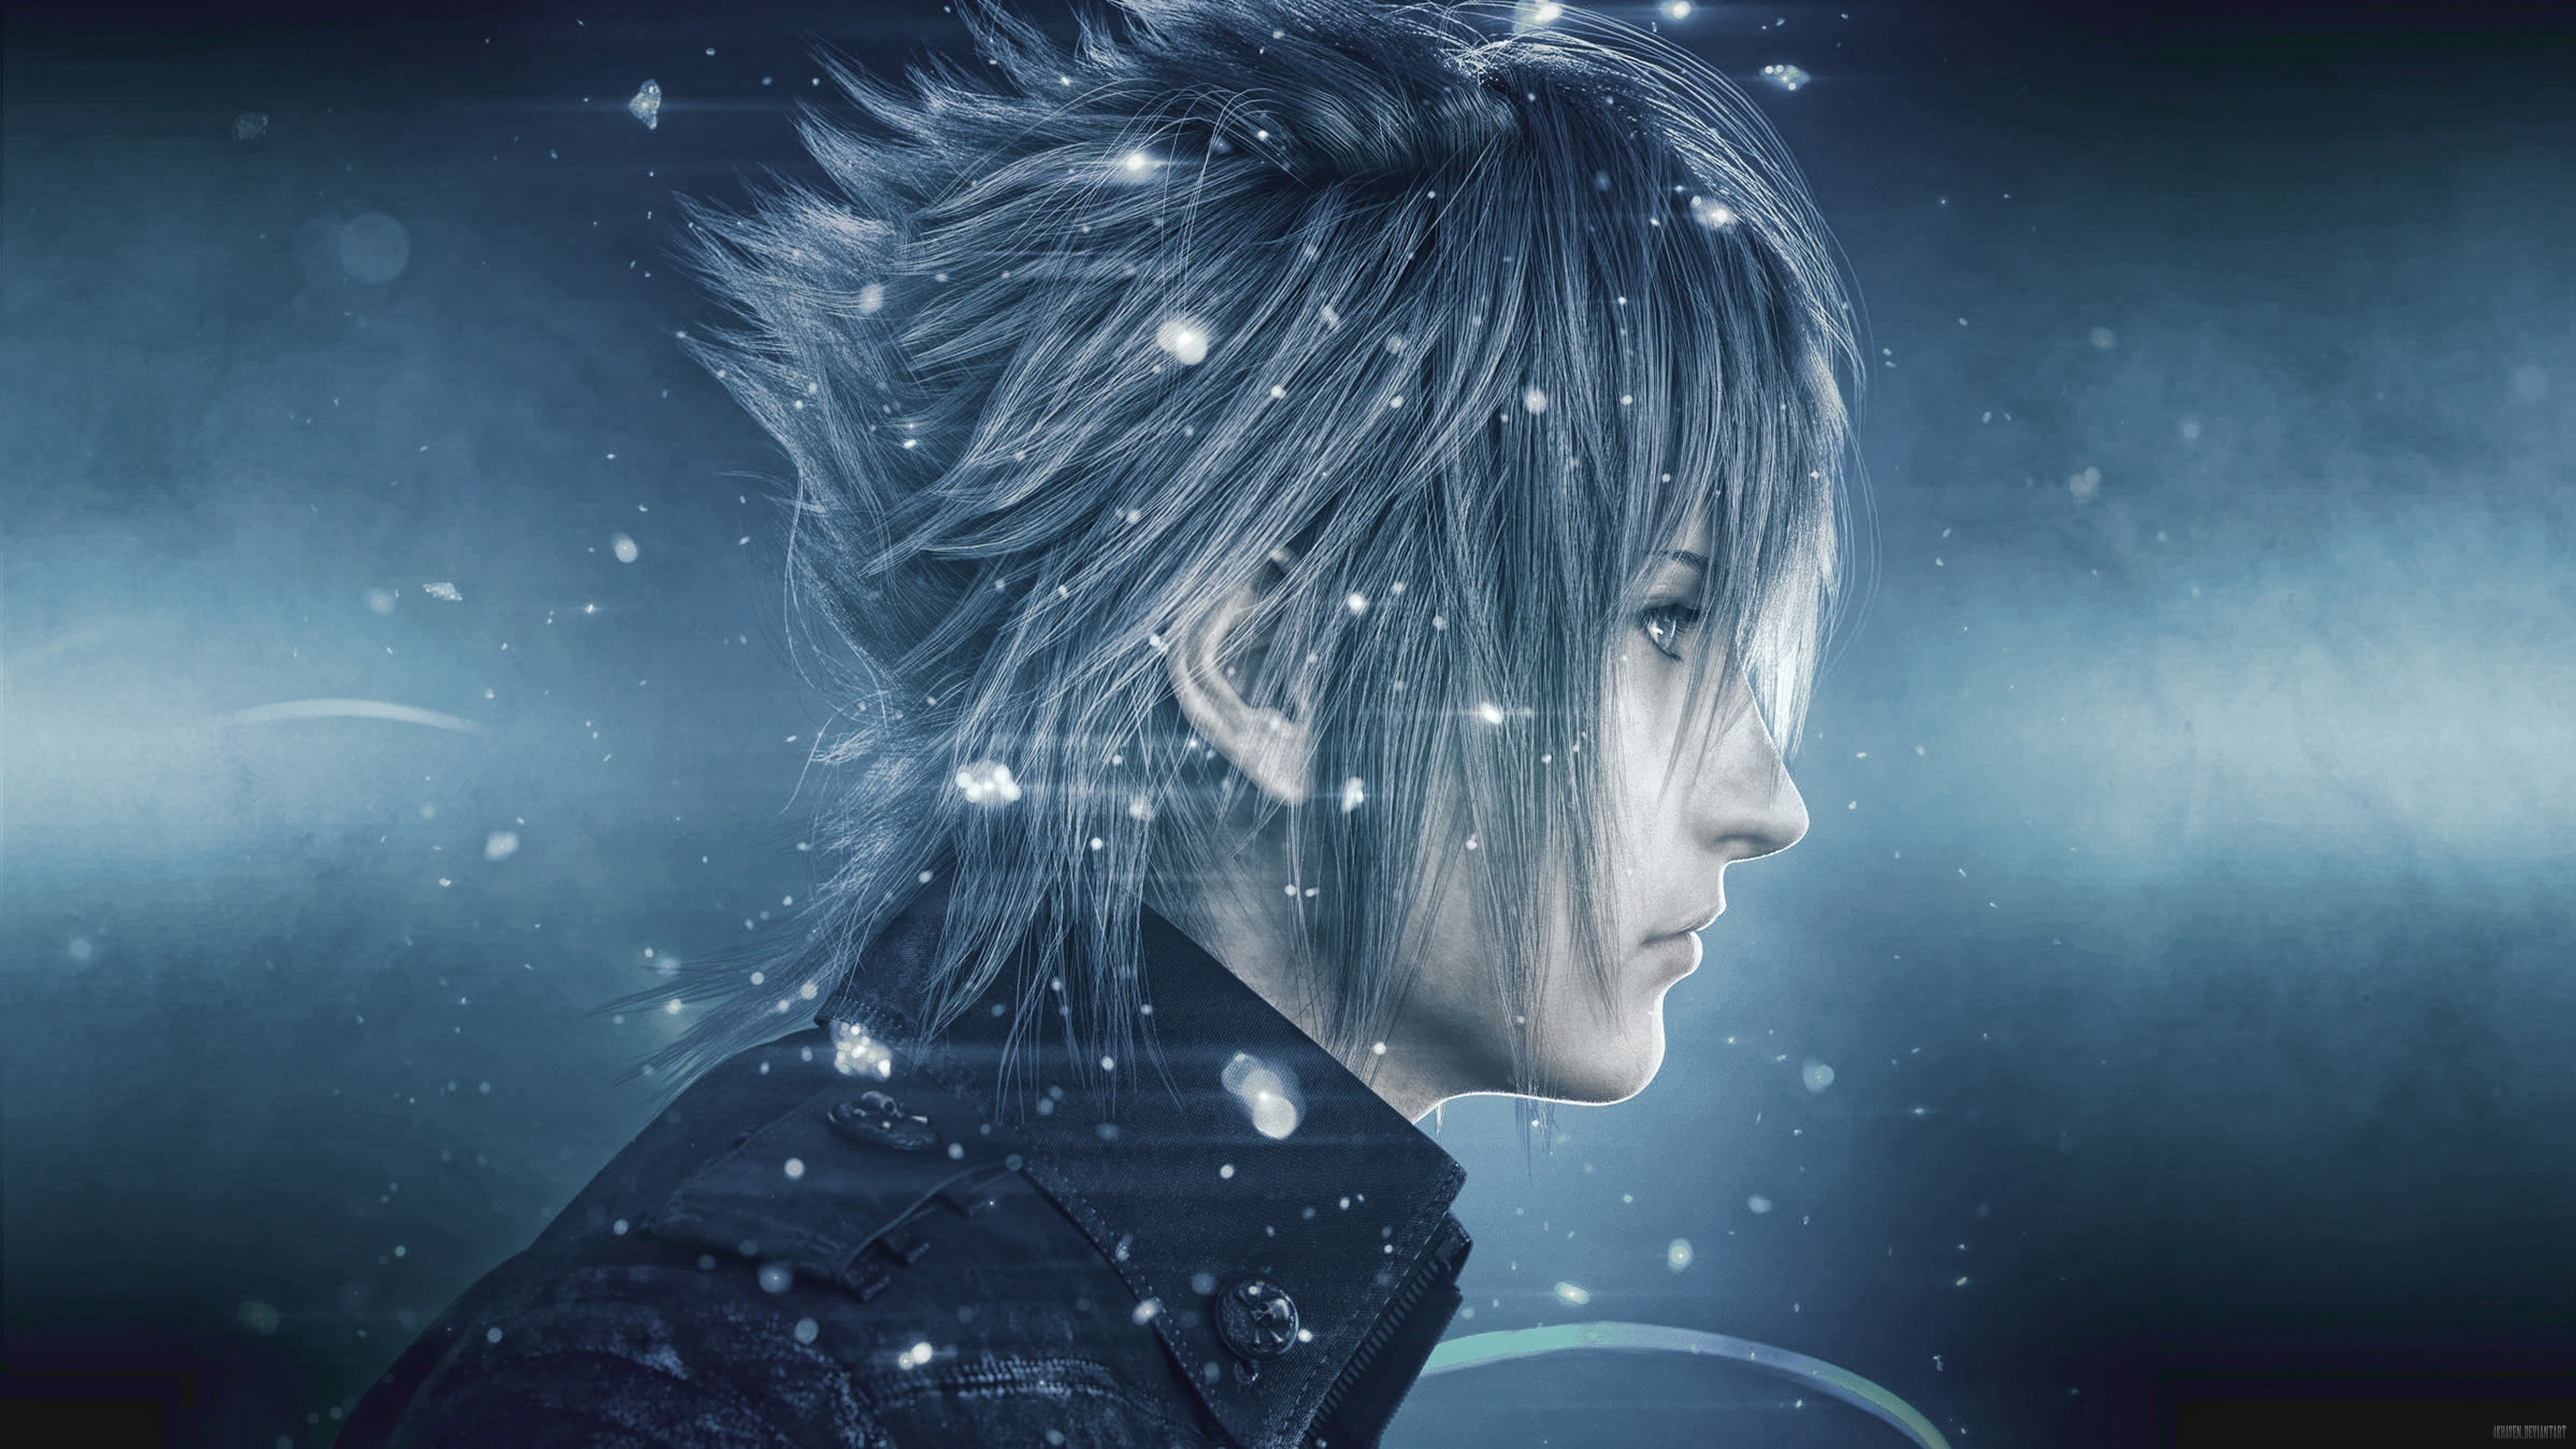 Final Fantasy Wallpaper Hd Download 3840x2160